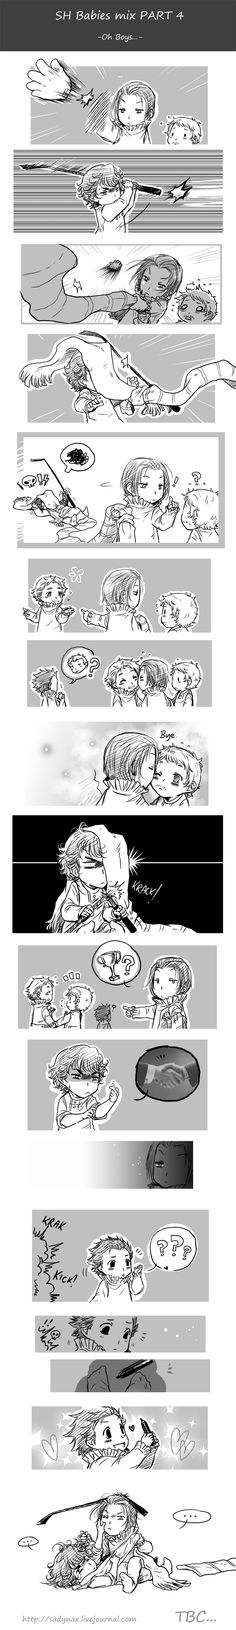 Sherlock babies comic Part 4 Sherlock and BBC!Sherlock keep up the fight. Sherlock begins talking to John and BBC!John and BBC!Sherlock gets jealous. The two Sherlock's try to fight for their John's, meanwhile RDJ!Sherlock finds a marker again:3